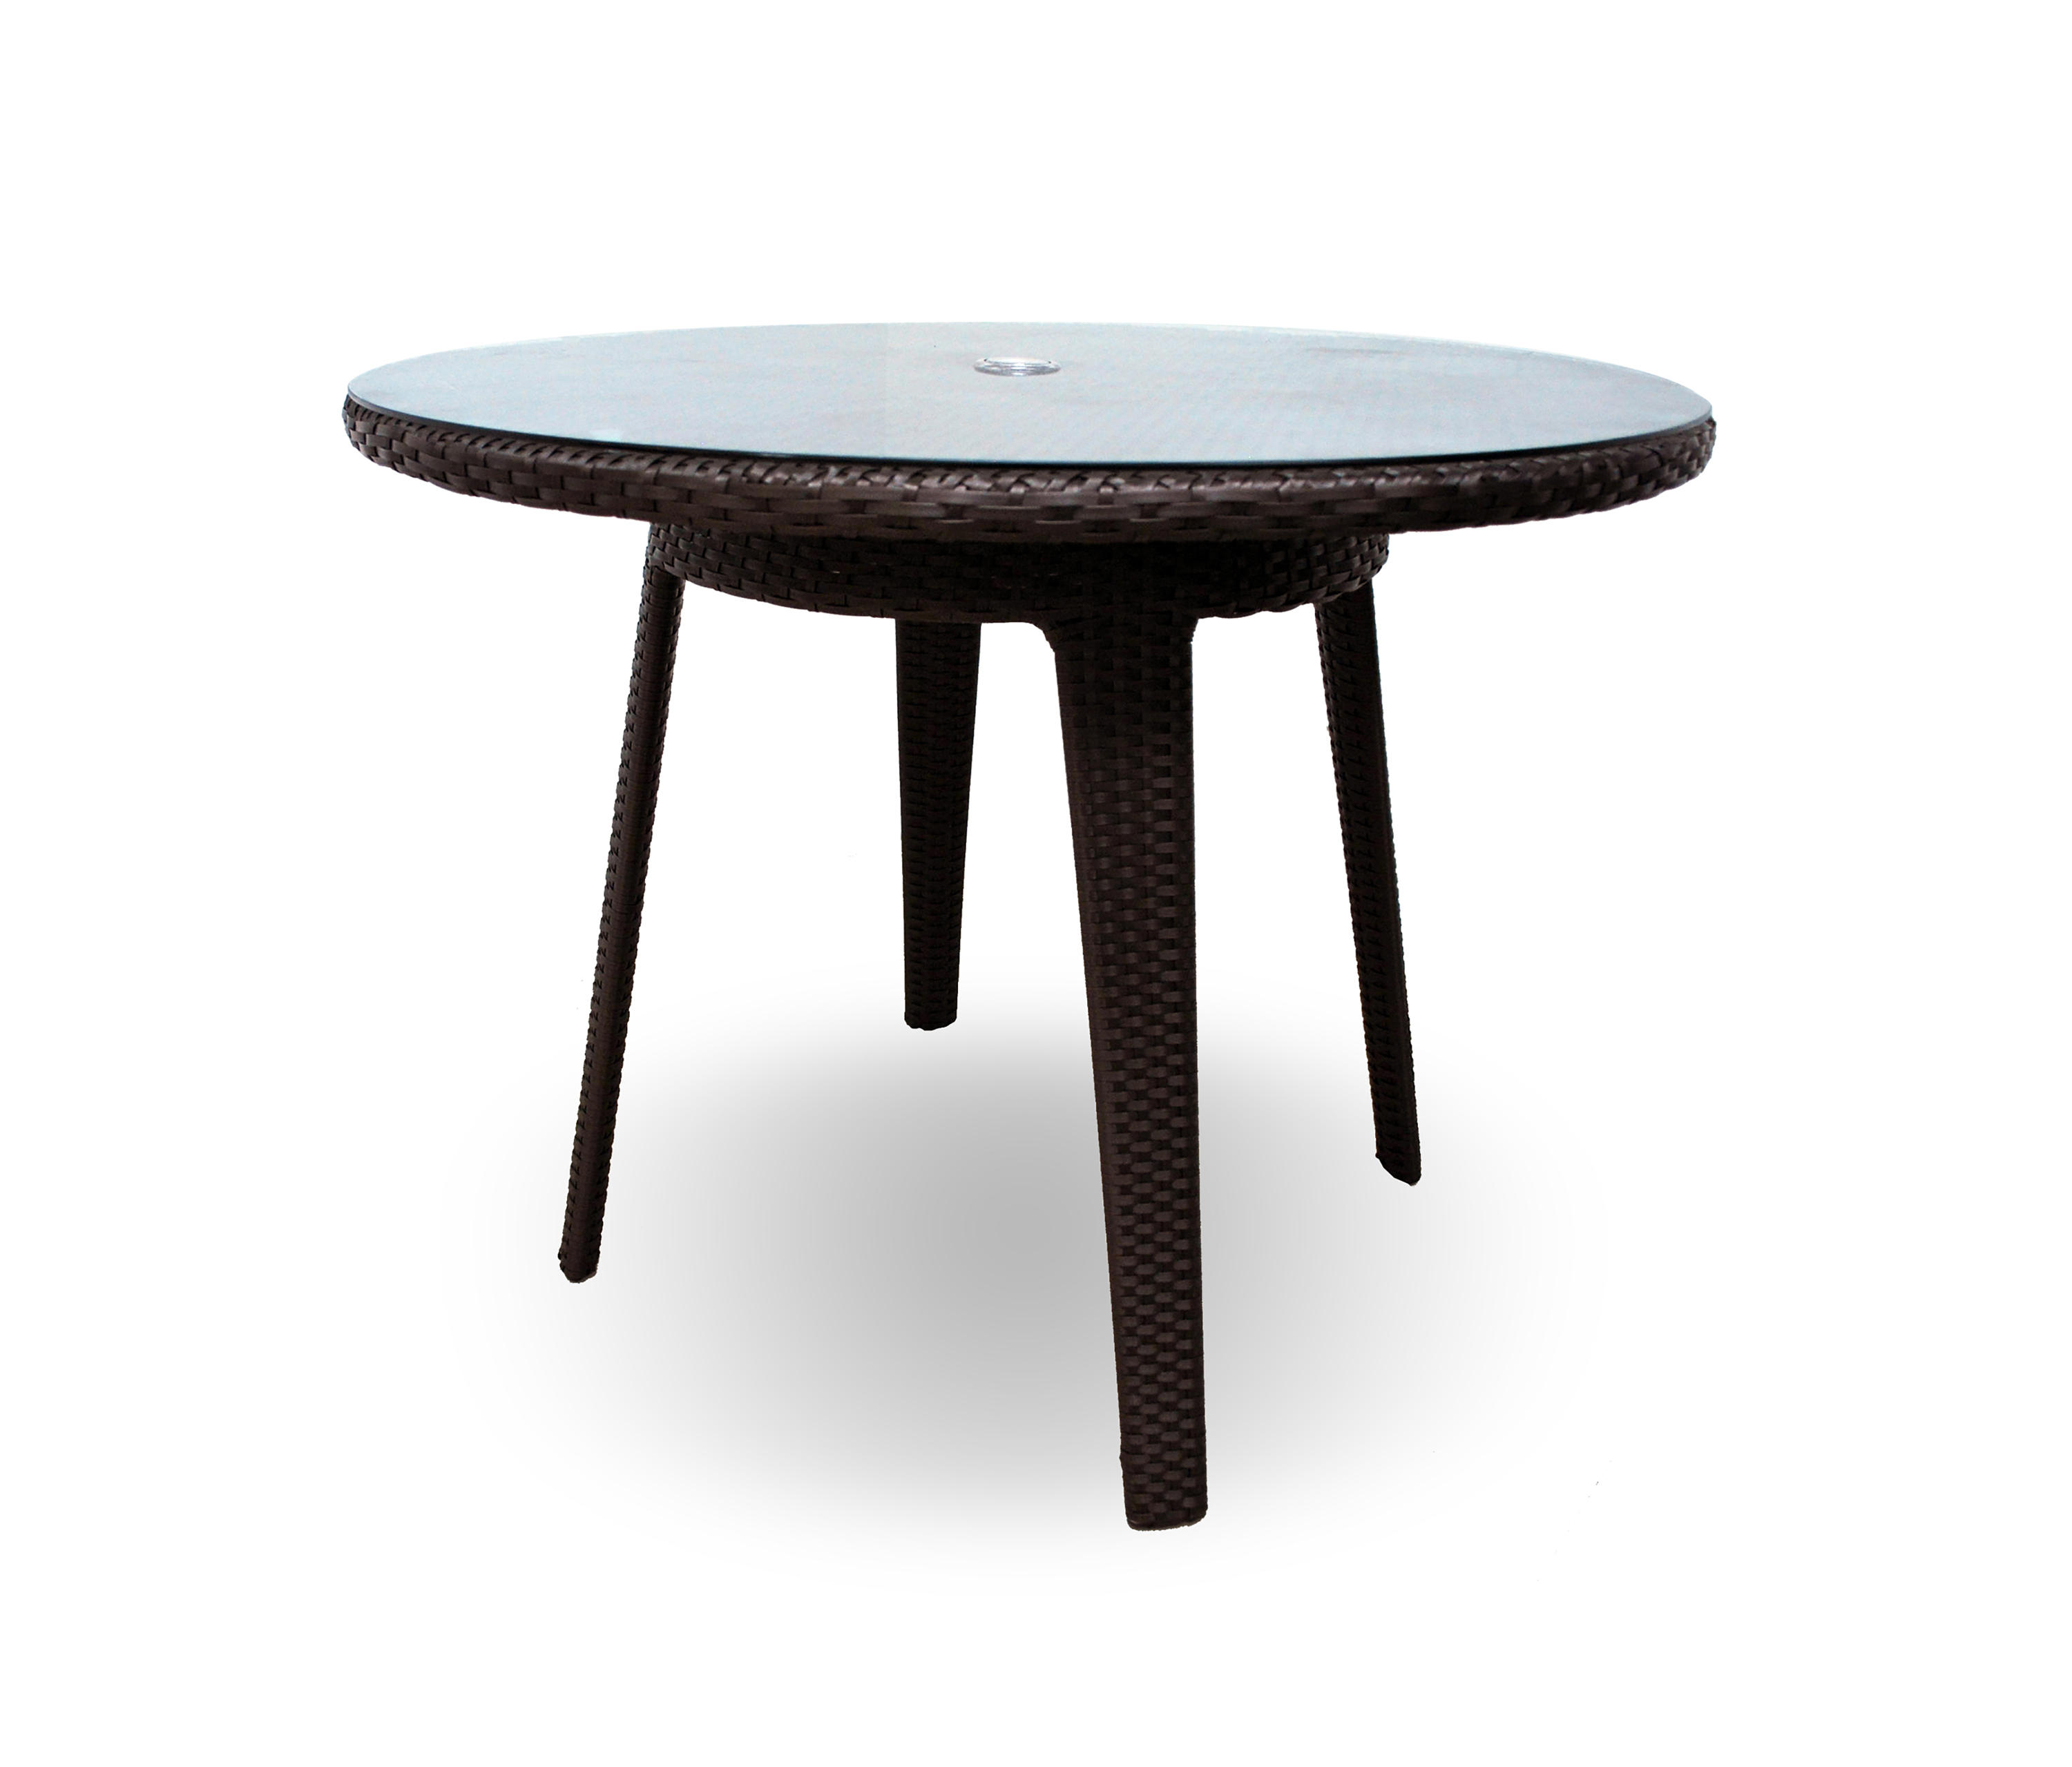 SENNA 40 ROUND DINING TABLE WITH TEMPERED GLASS TOP Dining Tables Fro